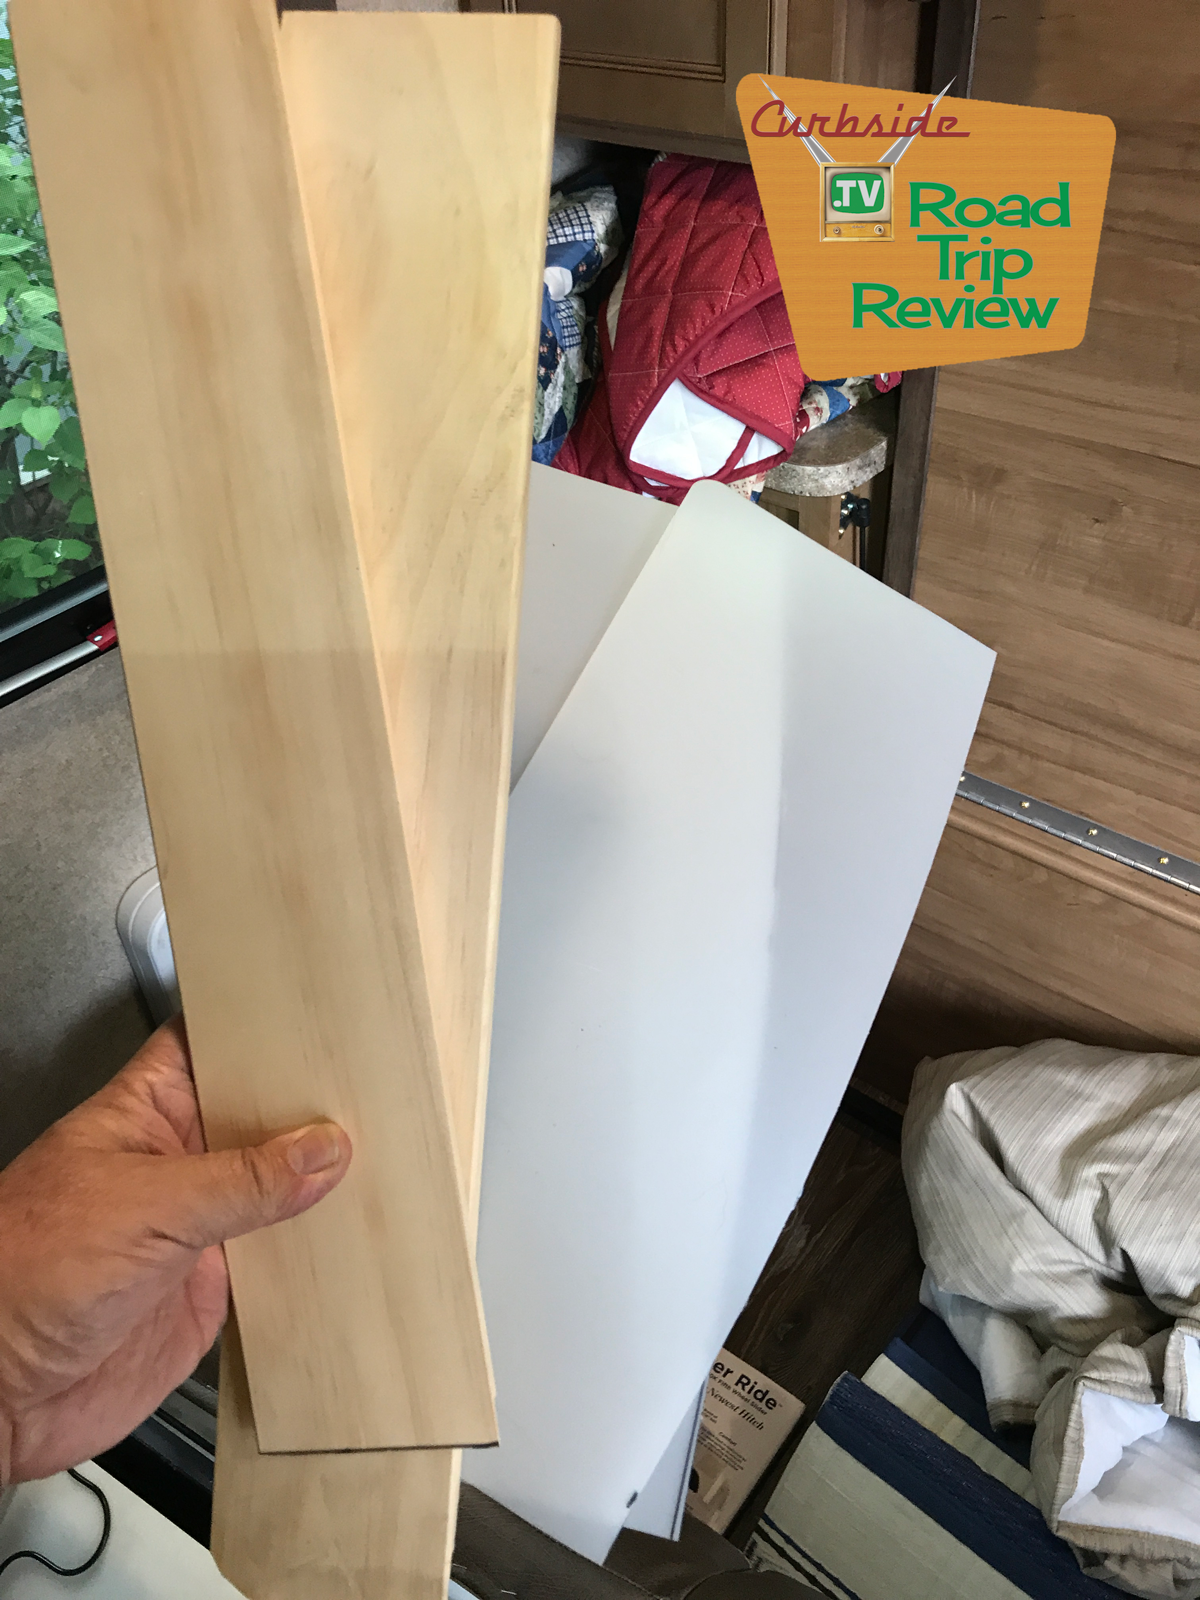 The spacers and cutting board material ready for installation.